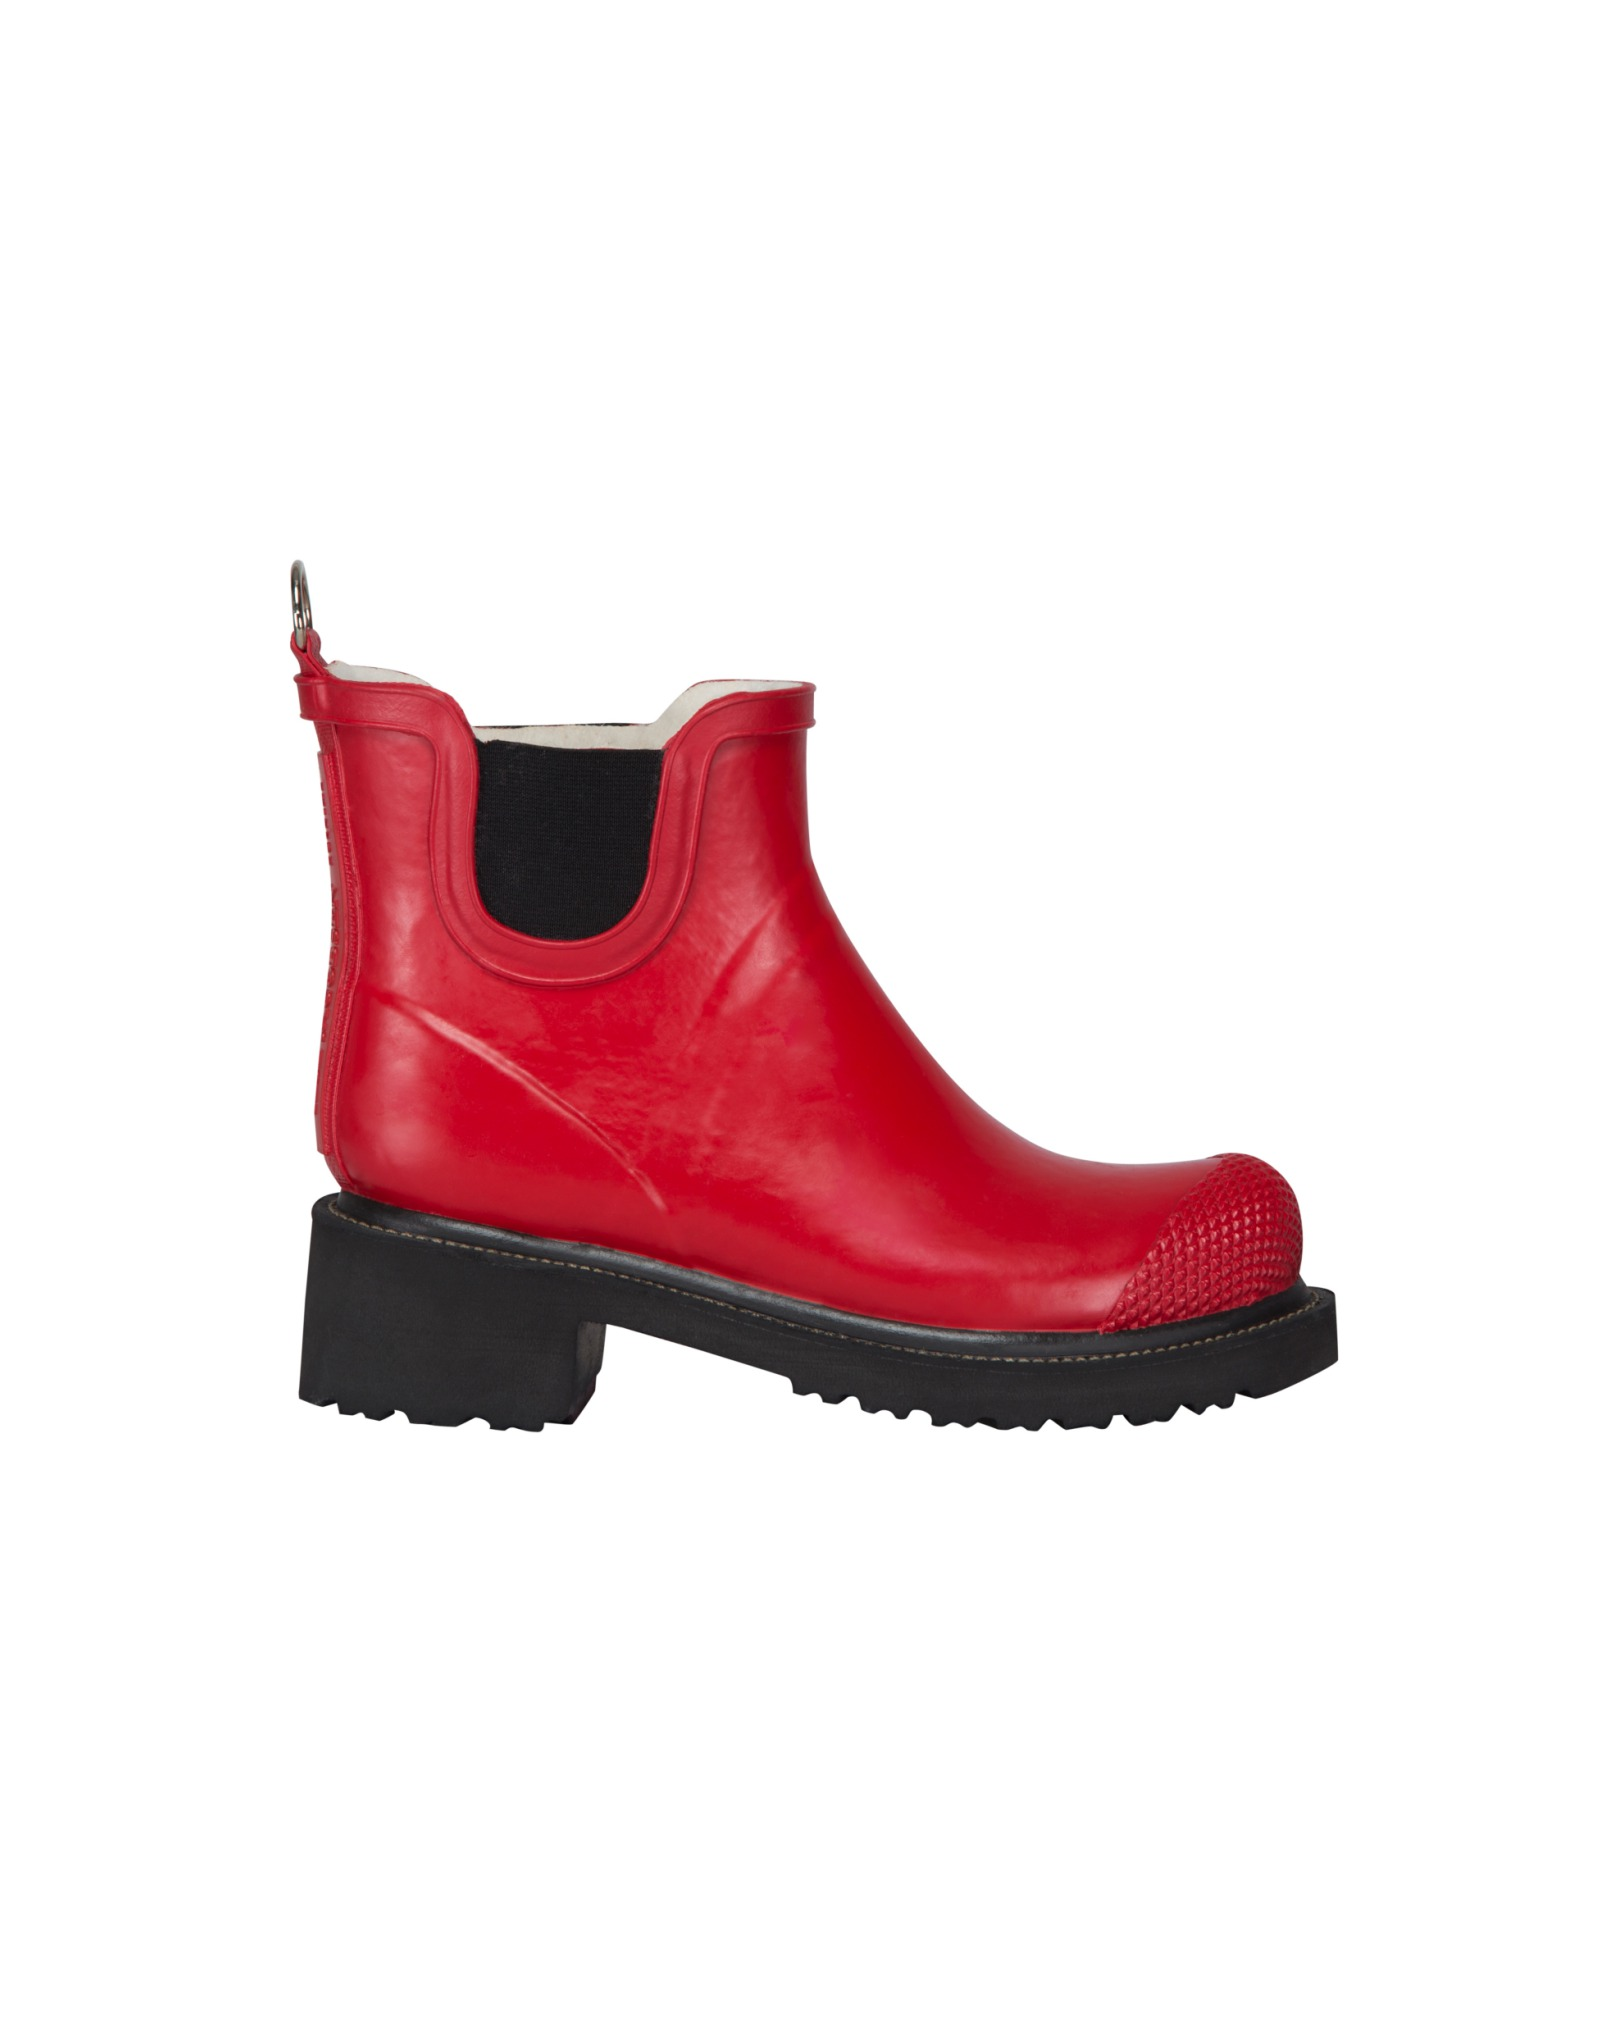 Ilse Jacobsen Short Heeled Rubber Boot - Deep Red, Moonstone Blue